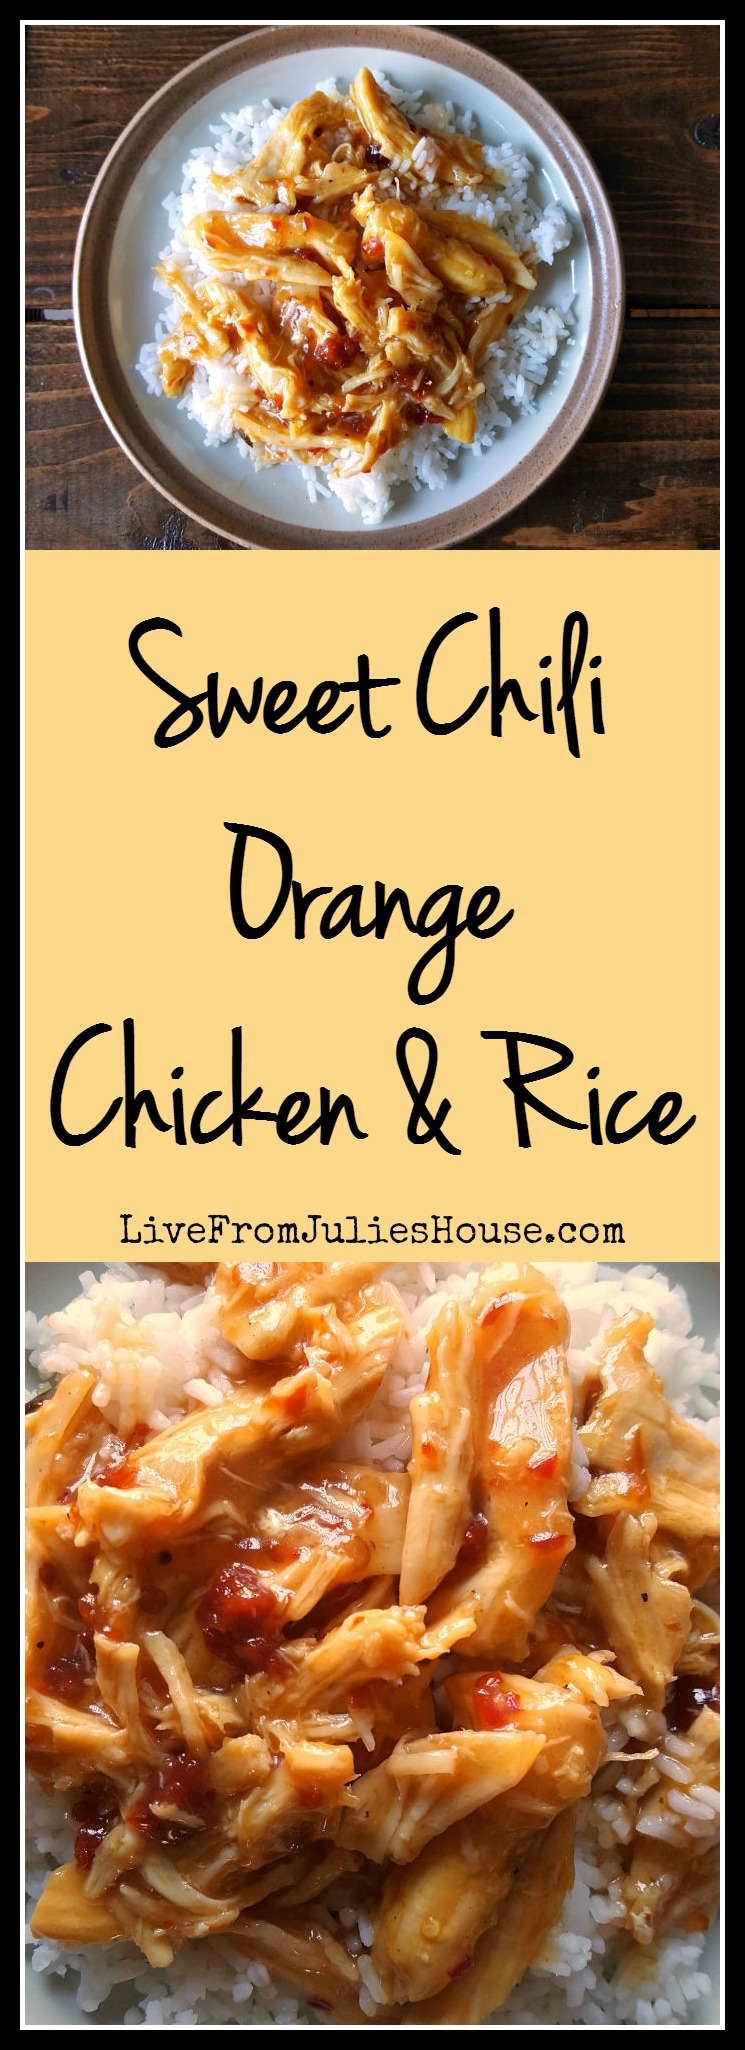 Sweet Chili Orange chicken & rice